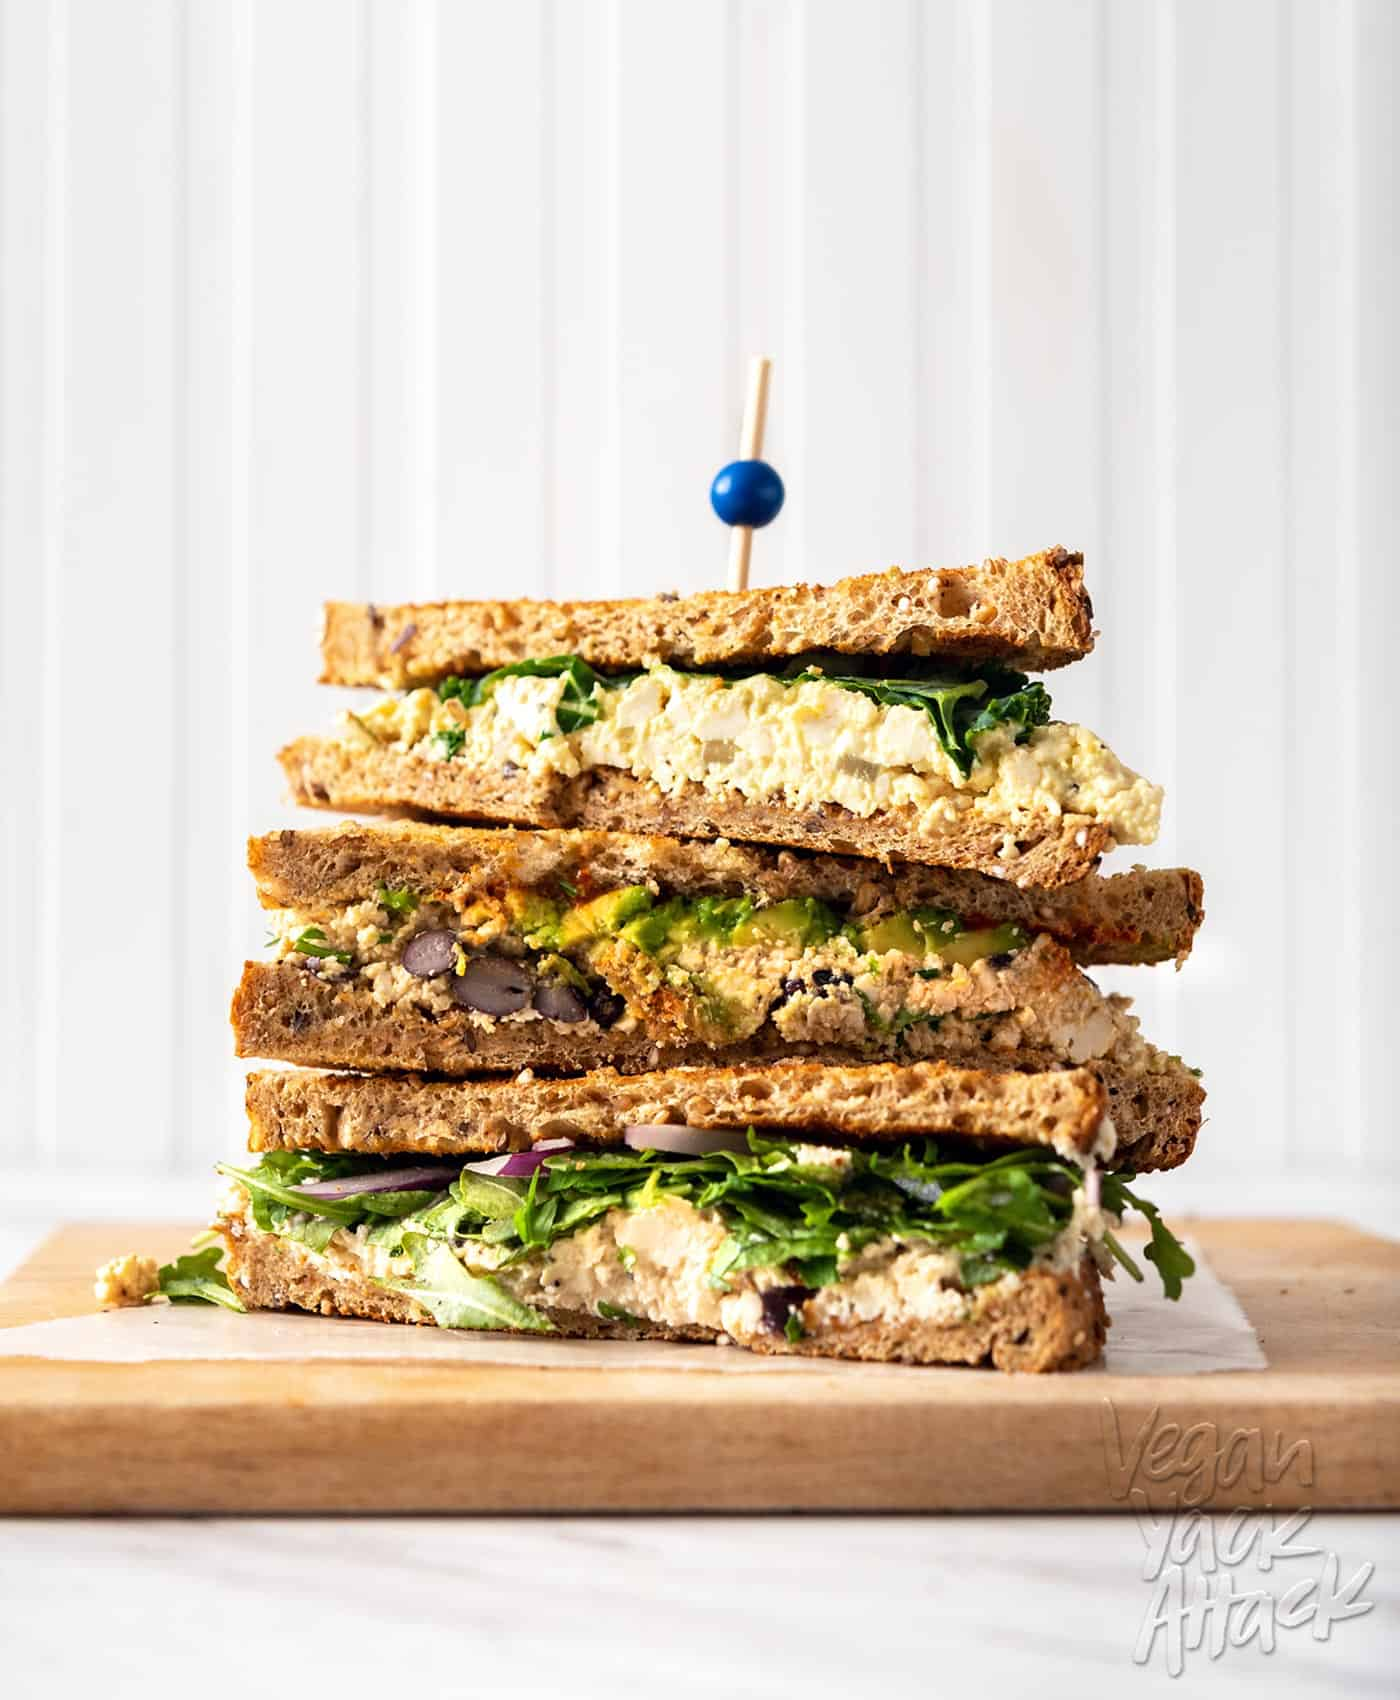 Image of three tofu 'egg' salad sandwiches stacked on one another on a cutting board